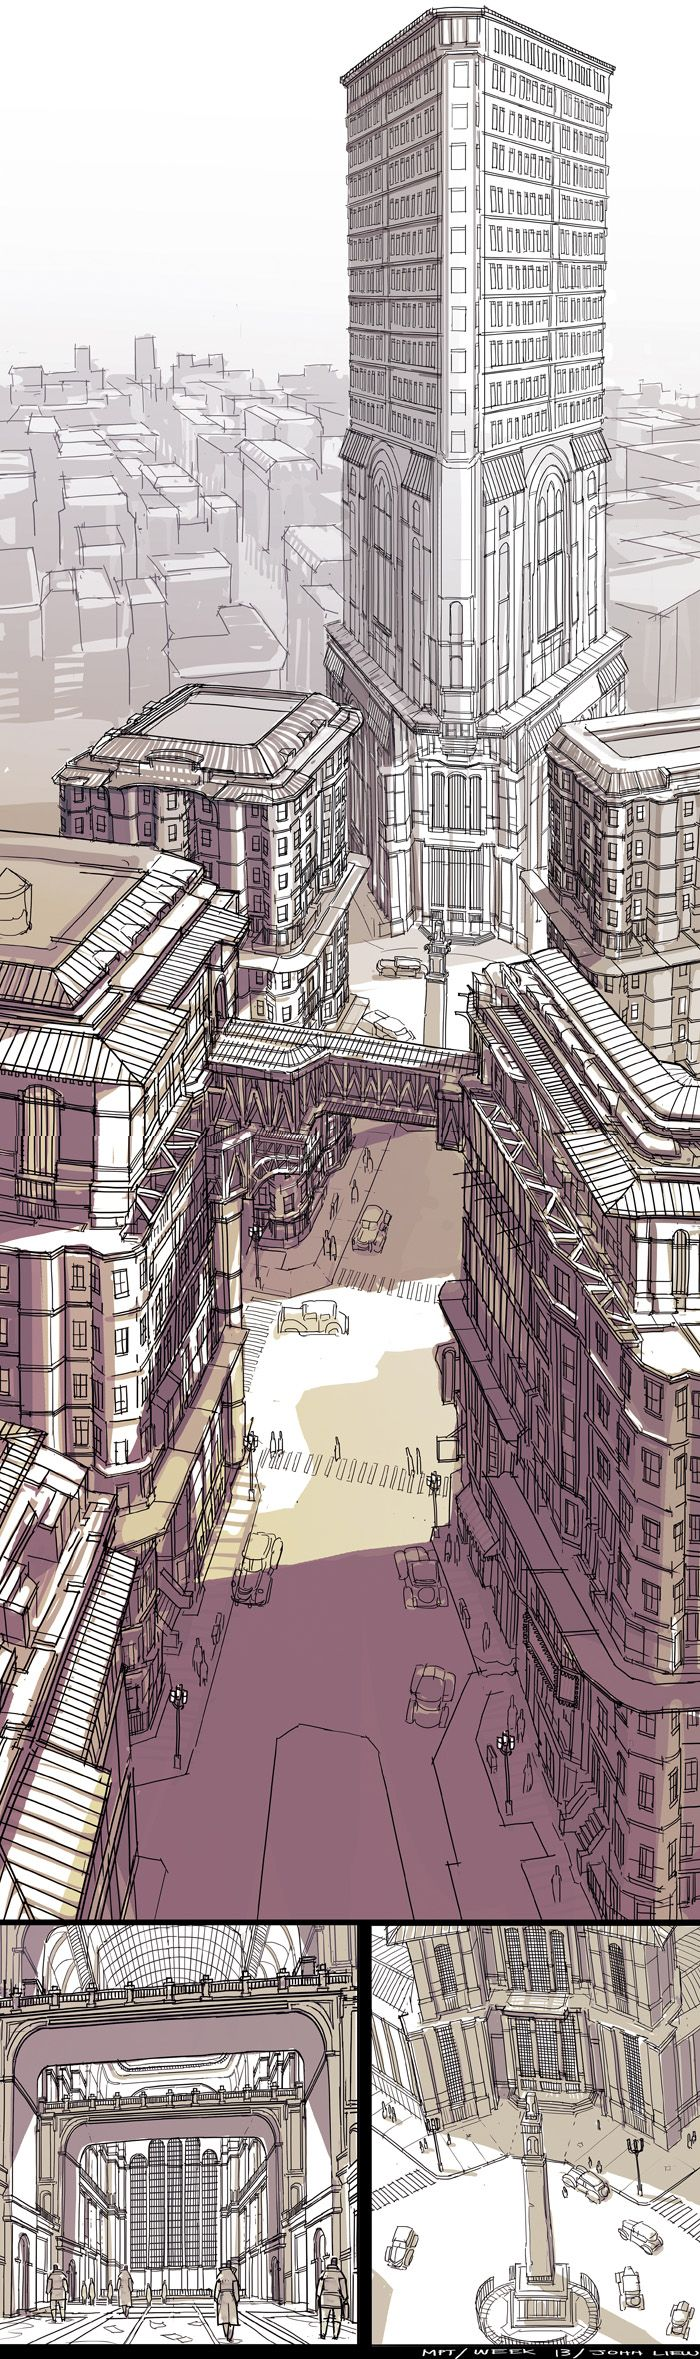 Feng Zhu Design: More Student Work via PinCG.com